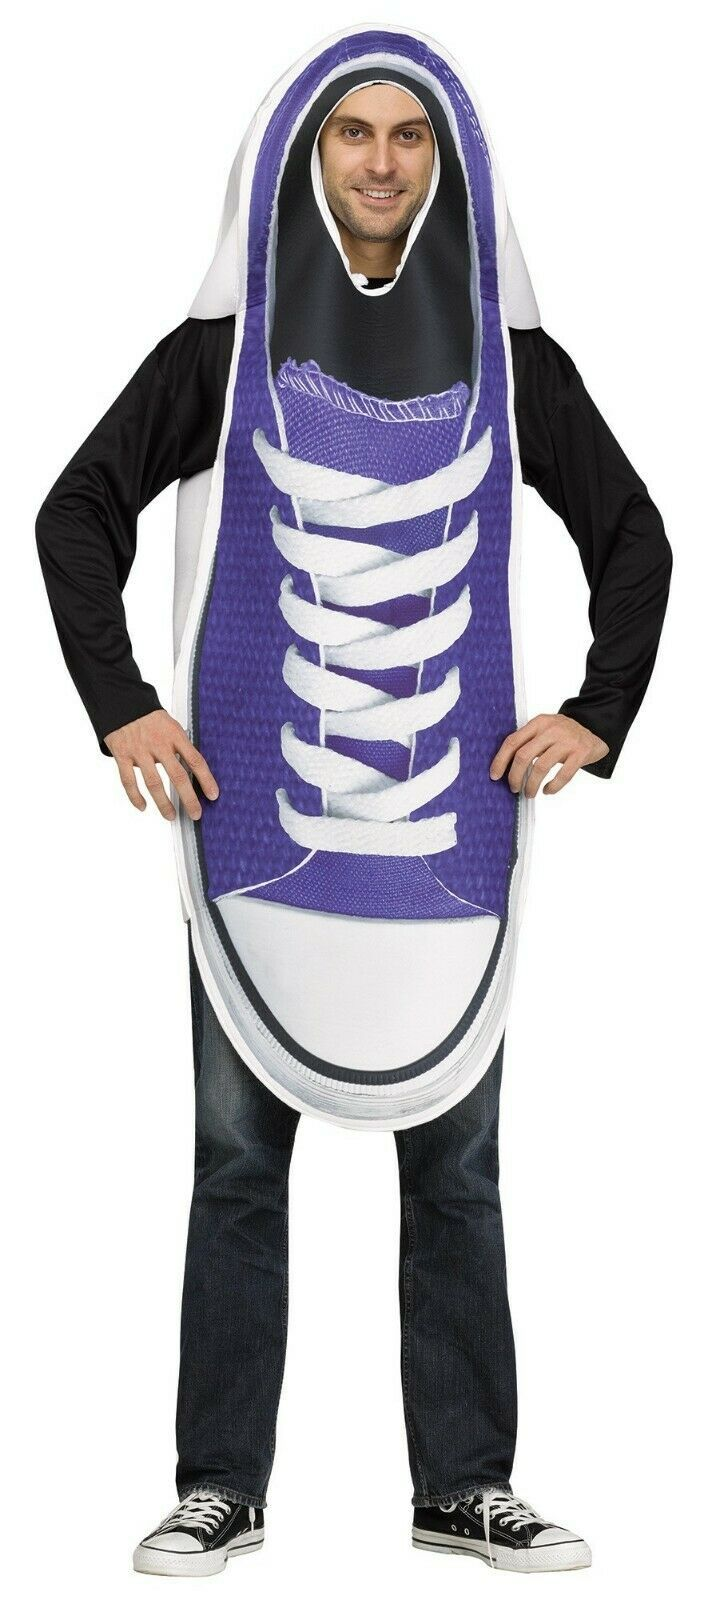 Fun World Pair of Sneakers Shoes Funny Adult Couples Halloween Costume 112514